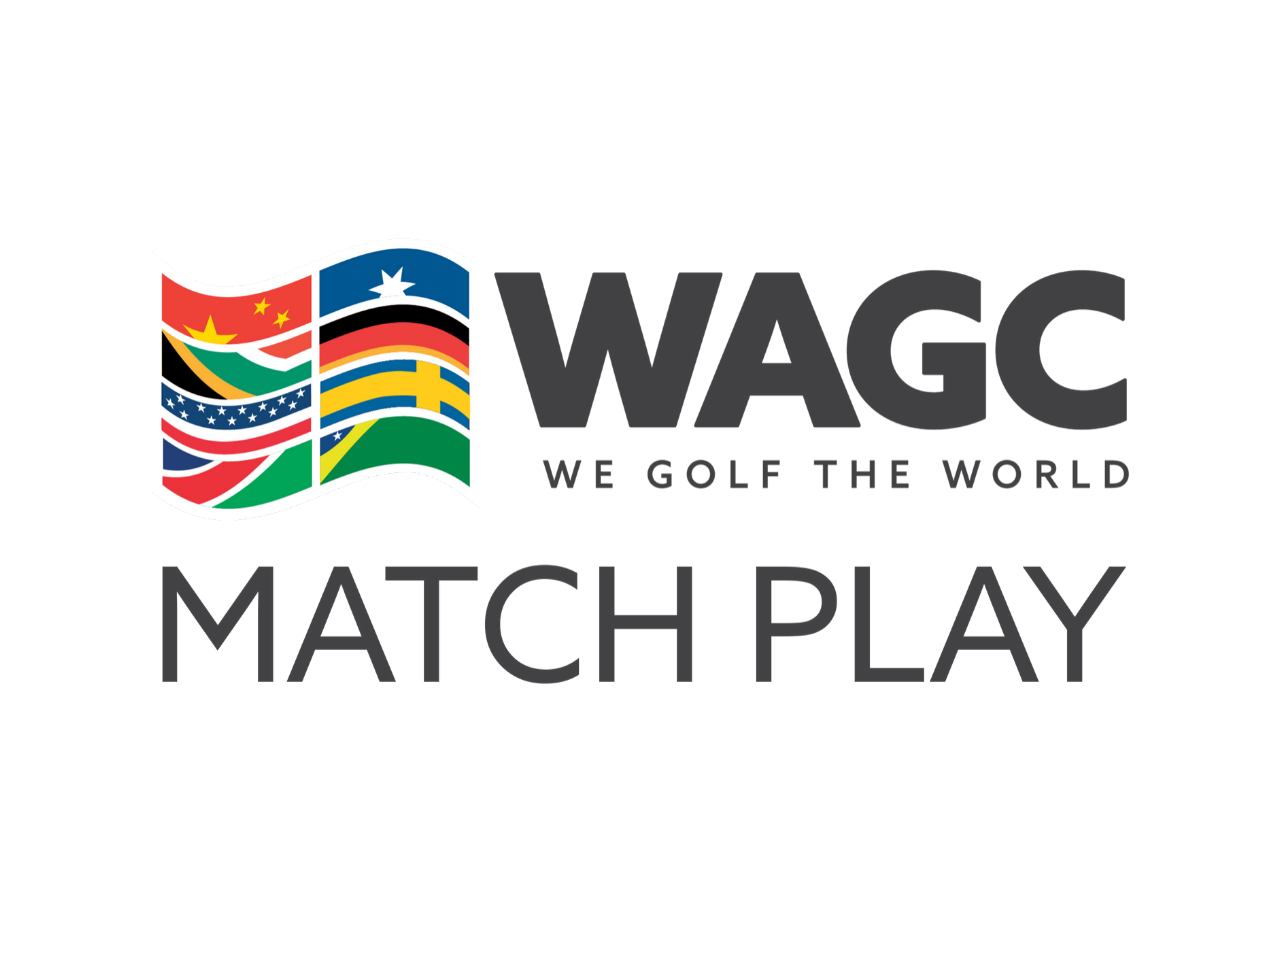 WTM_MatchPlay_1280x960_Rounded